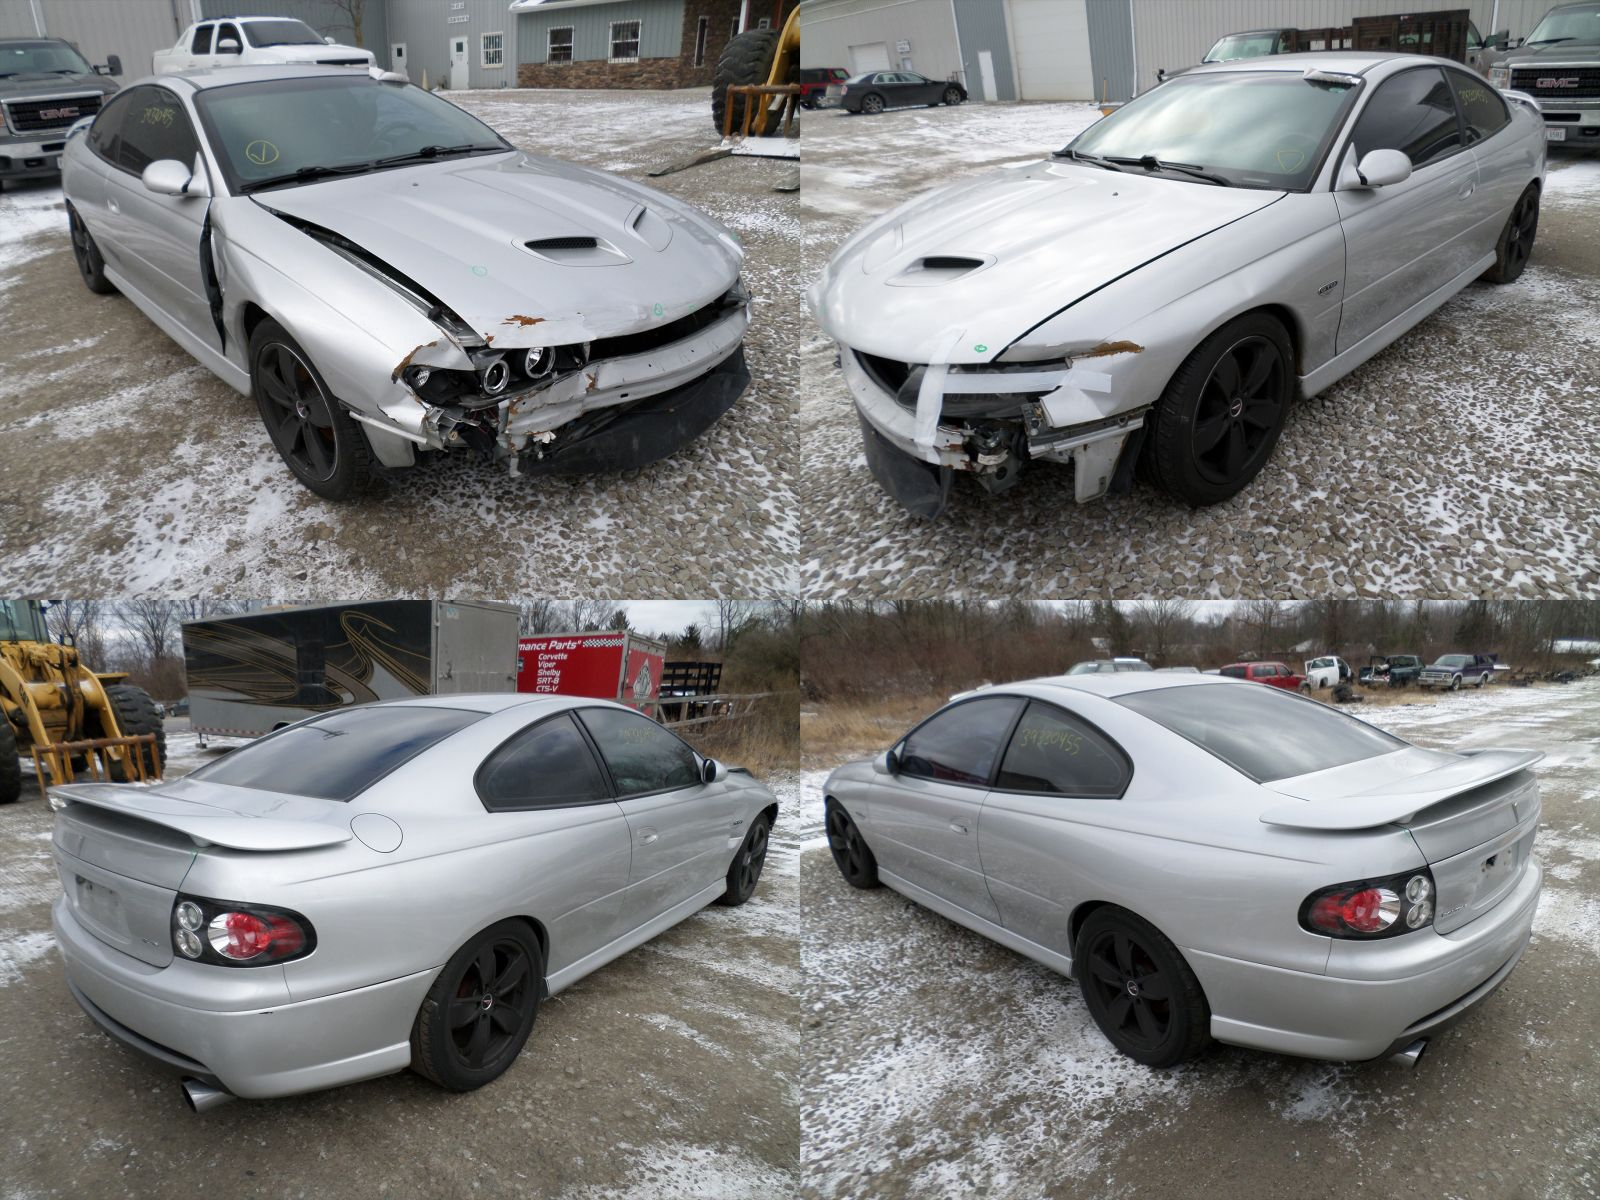 Hellcat For Sale >> 2006 Silver Pontiac GTO - Cleveland Power & Performance